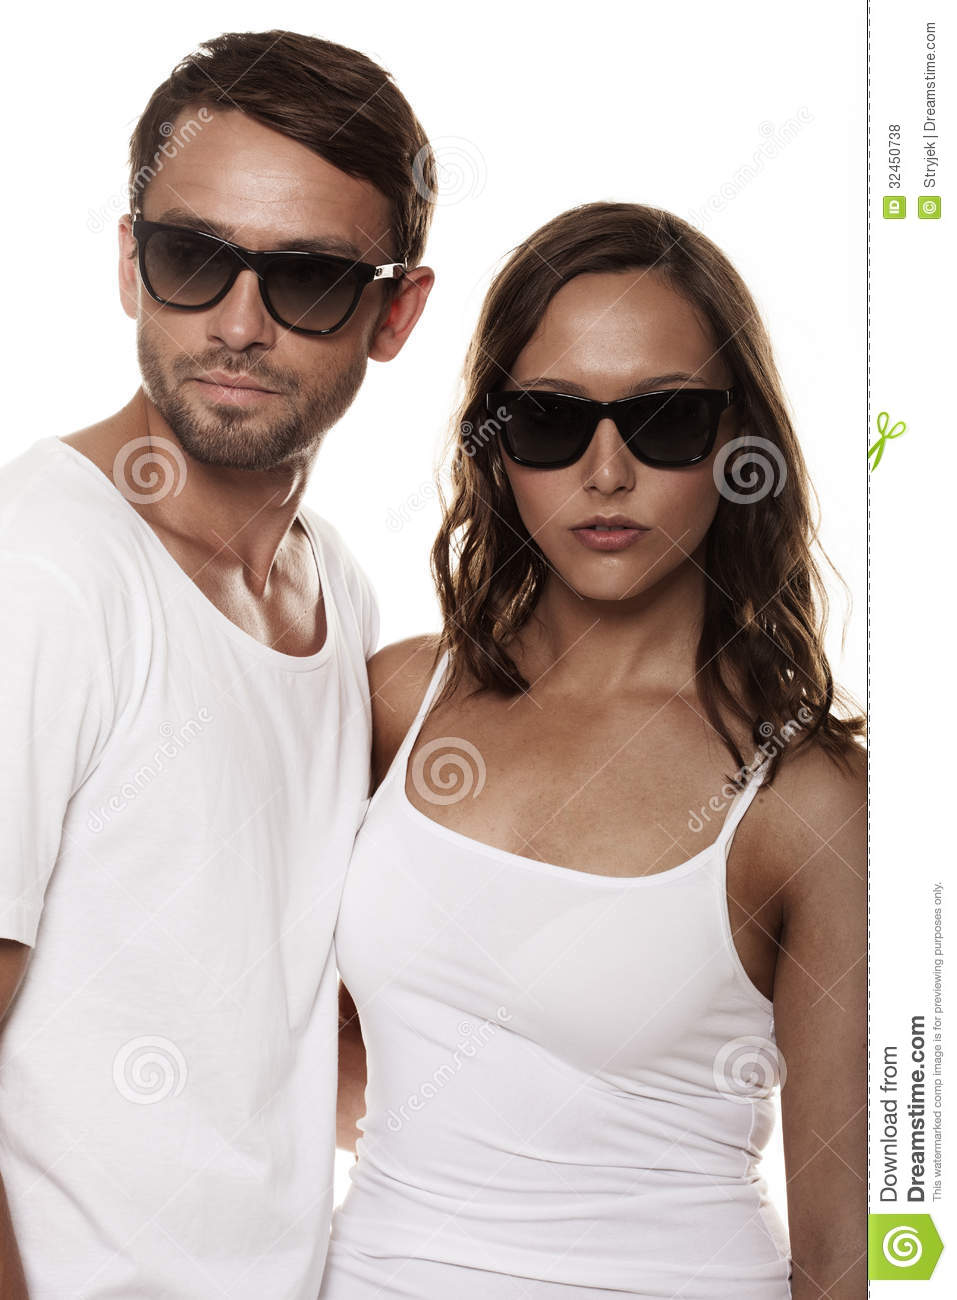 dc6e8ac3560 Couple wearing sunglasses stock photo. Image of shades - 32450738